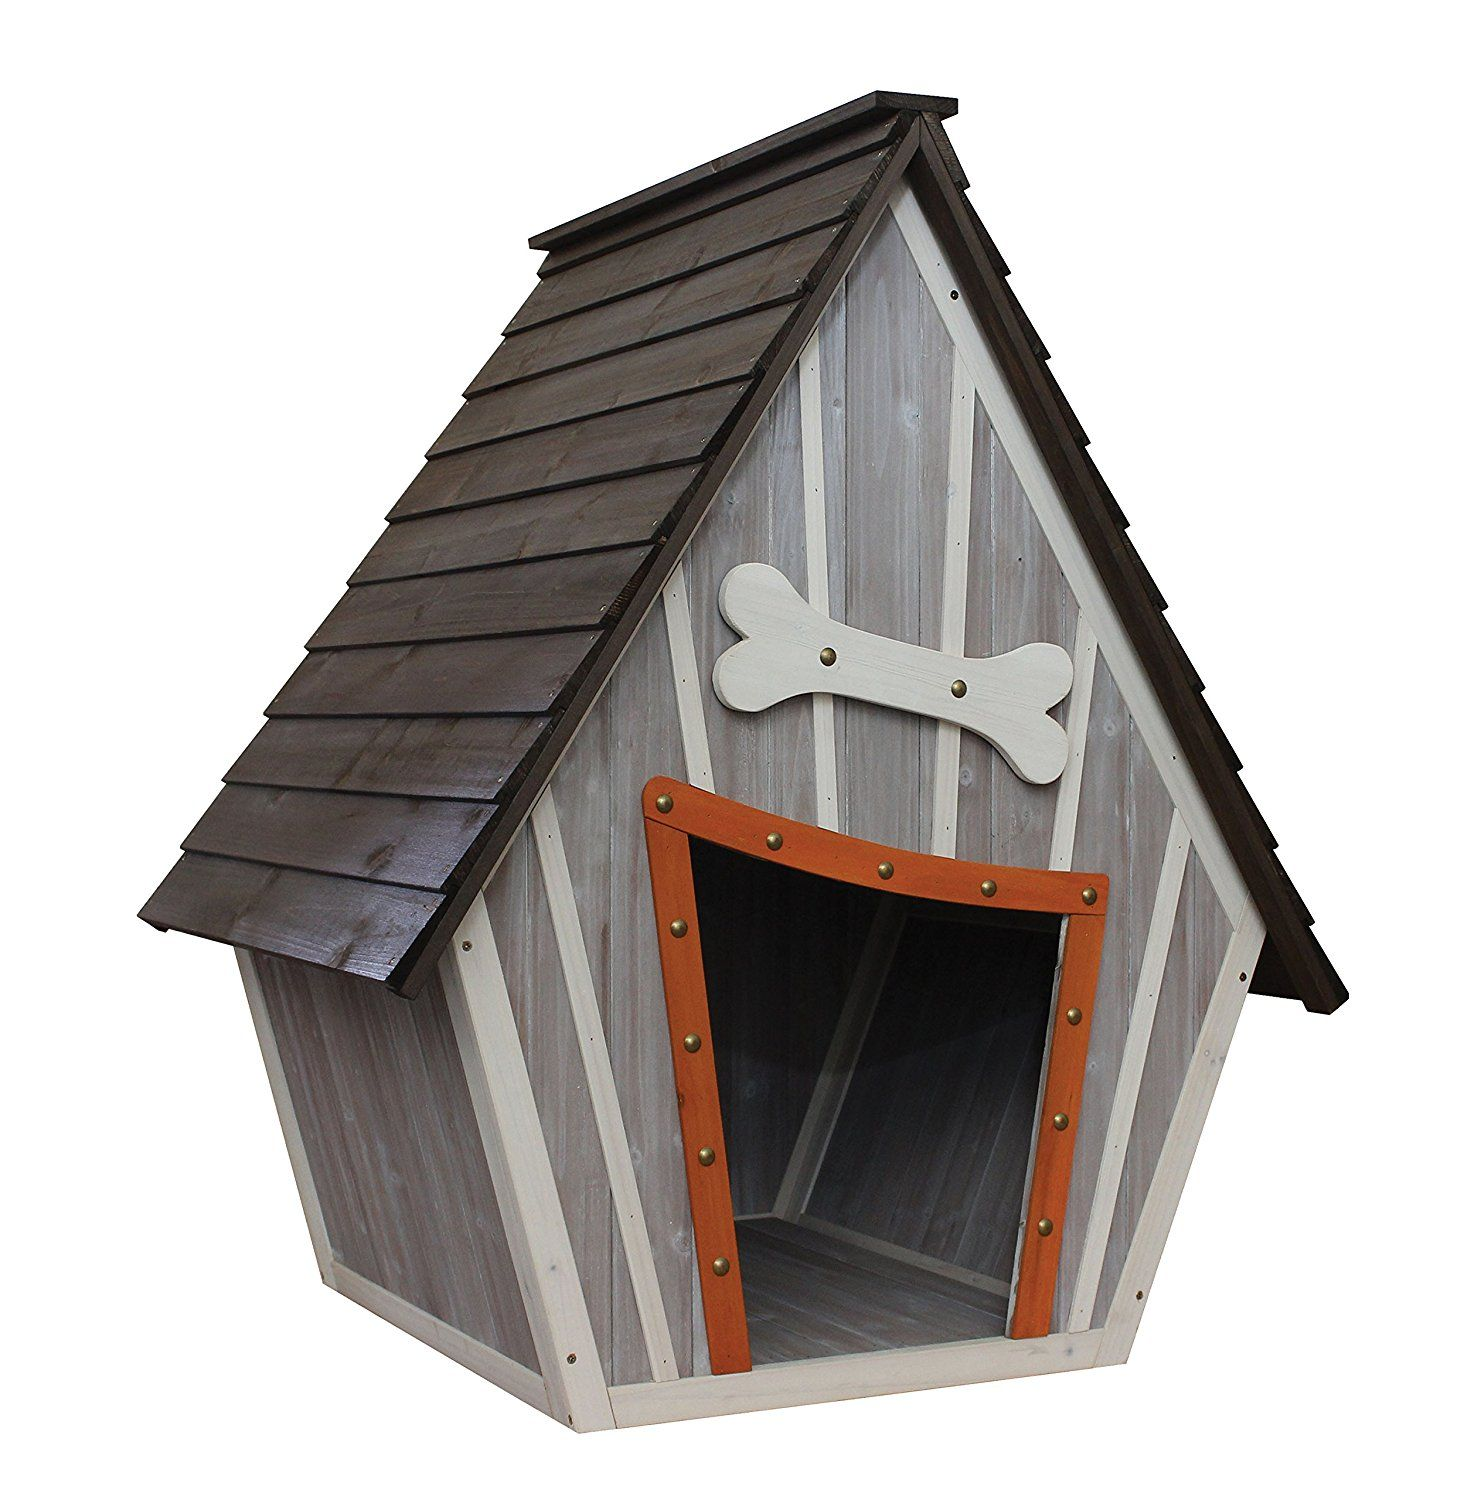 Who wouldn t want a cartoony looking dog house Solid wood